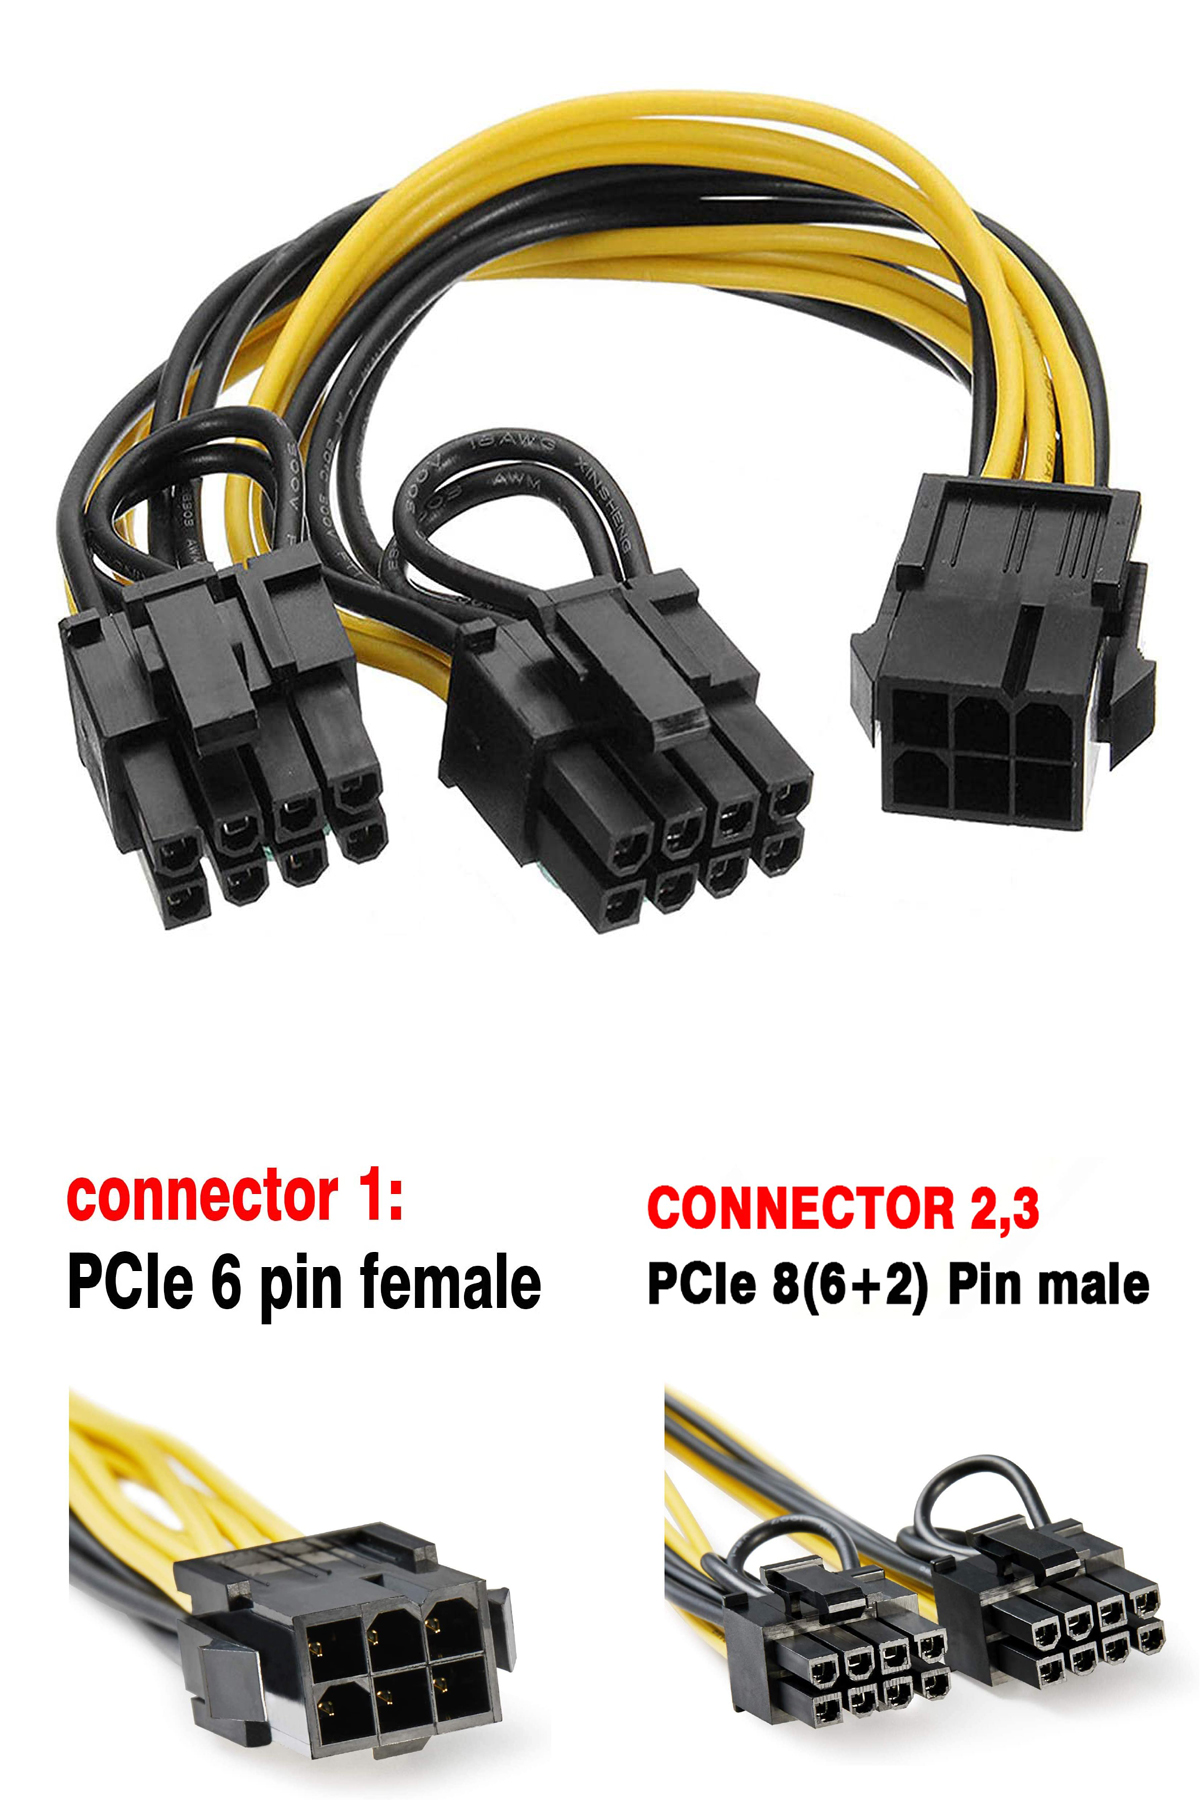 6 Pin to Dual 8 (6+2) Pin PCIe Adapter Power Cables, 6 Pin to Dual PCIe 8 Pin Graphics Card PCI Express Power Adapter GPU VGA Y-Splitter Extension Cords Mining Video Card Converter Cable (1Pack/20cm)